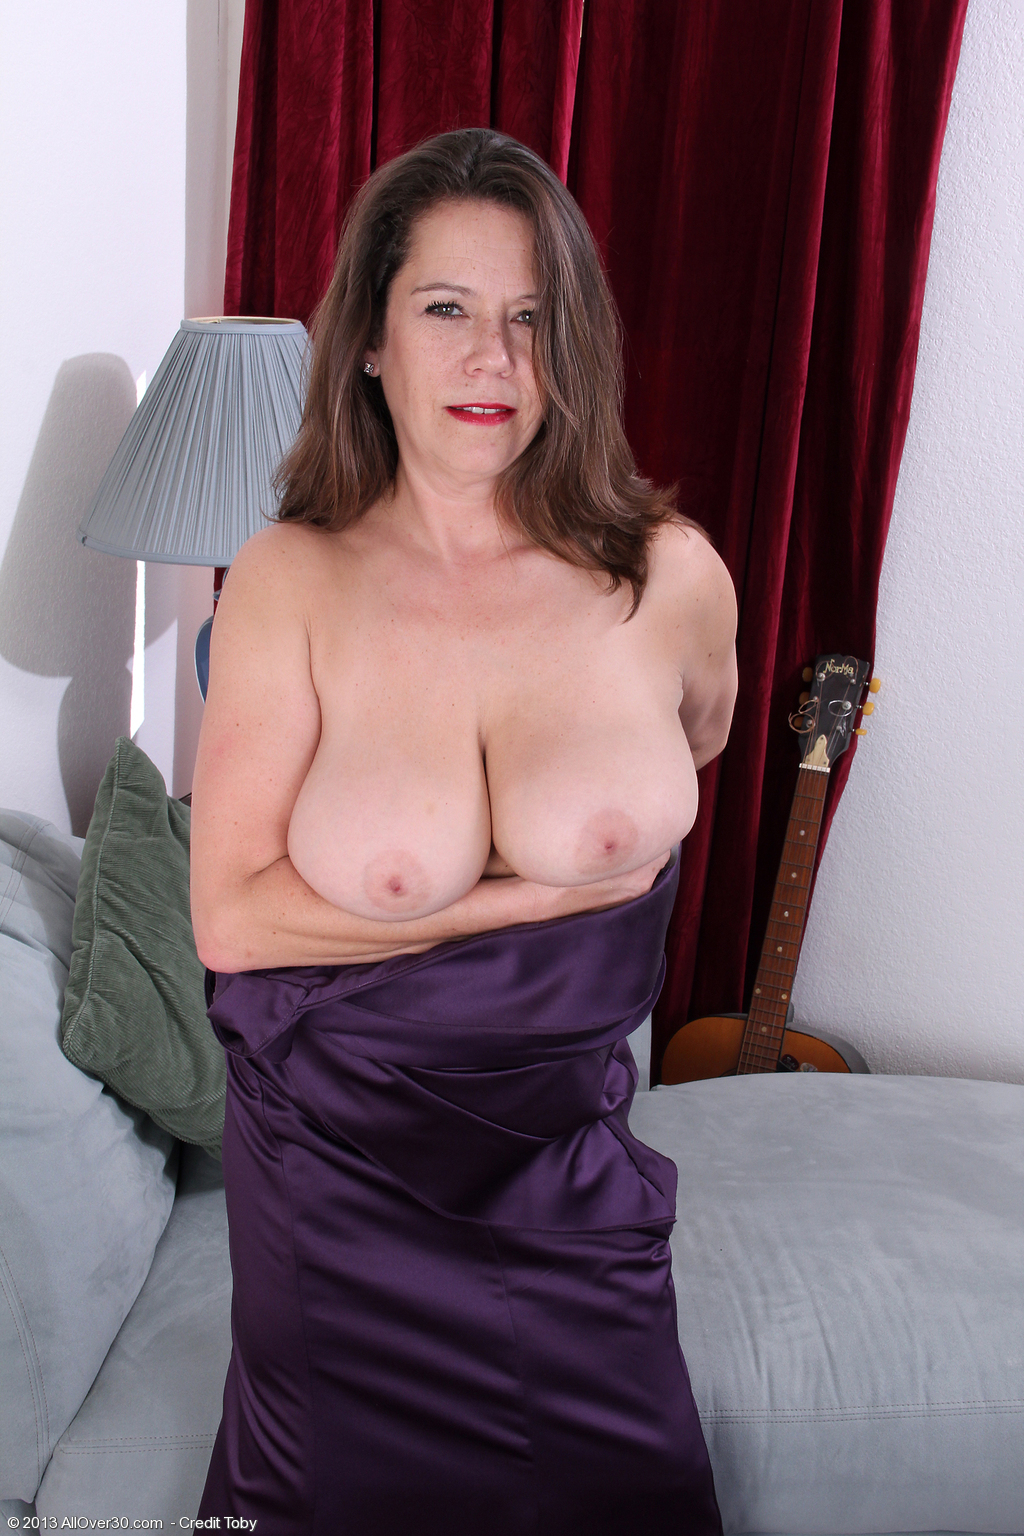 66 year old slut linda - 1 6